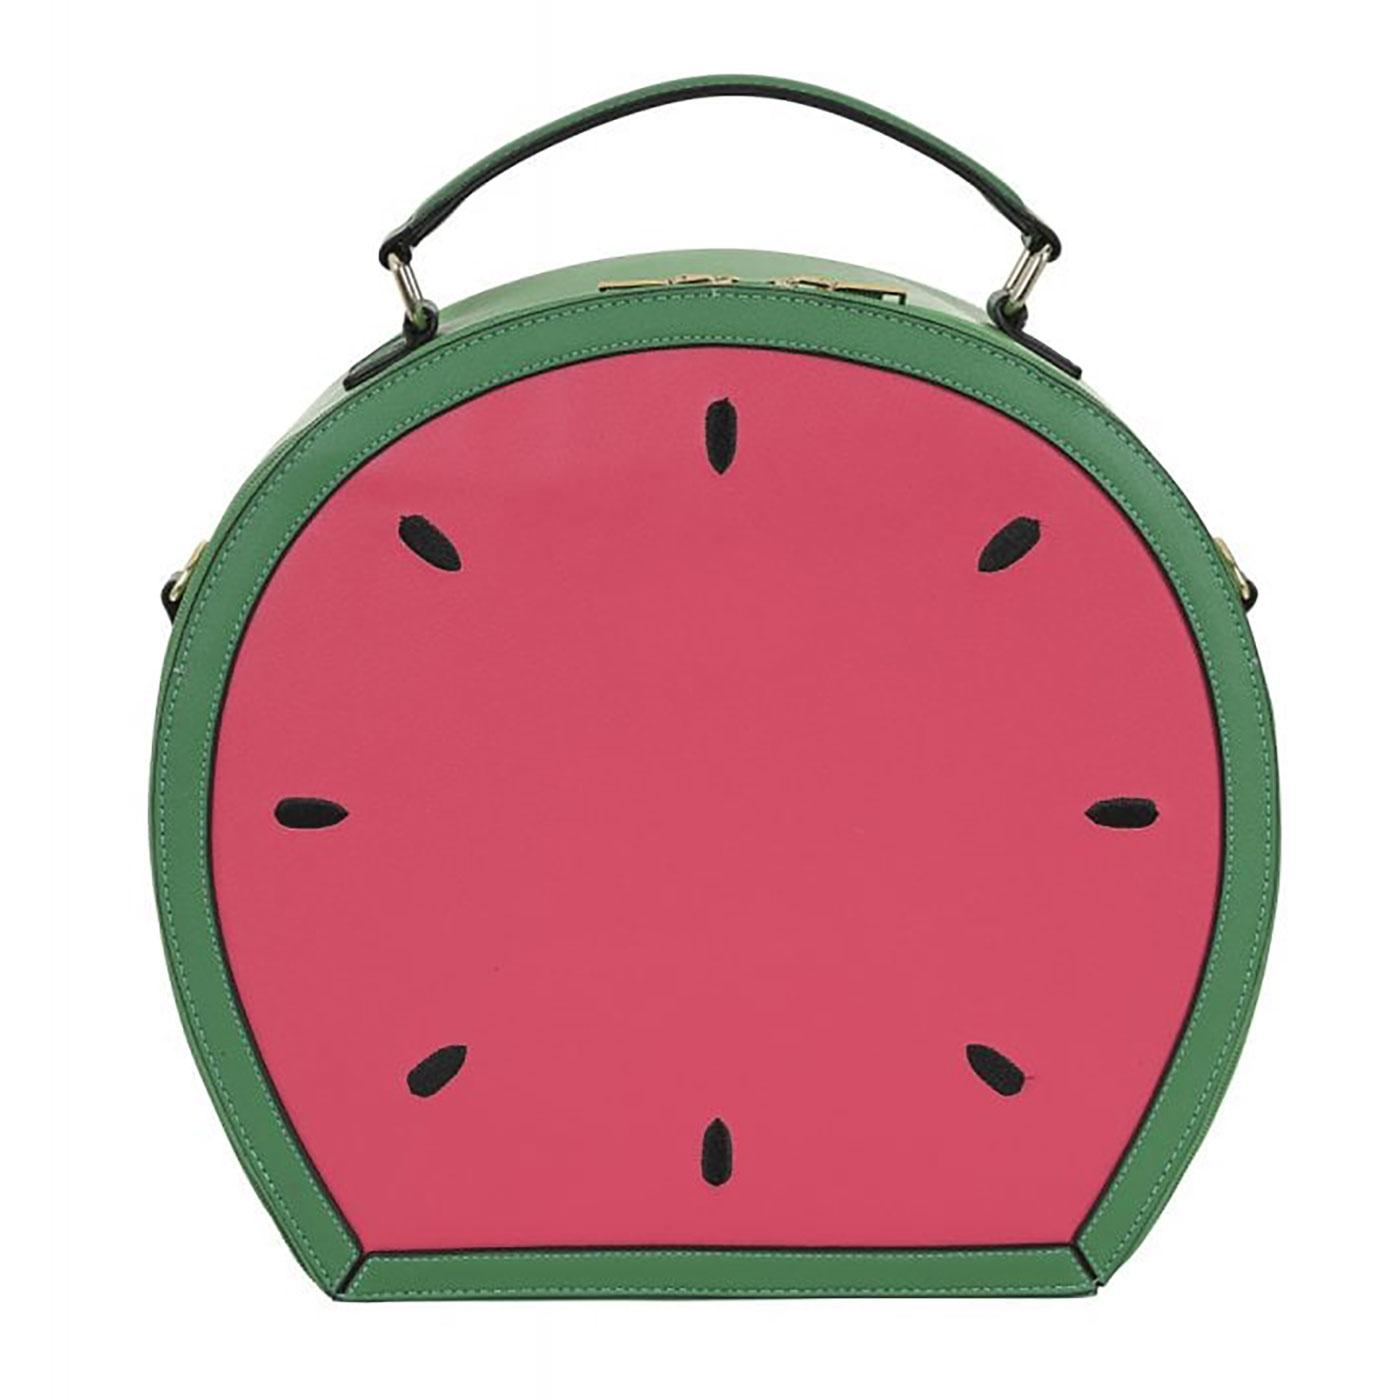 Alexandria COLLECTIF Vintage Watermelon Handbag